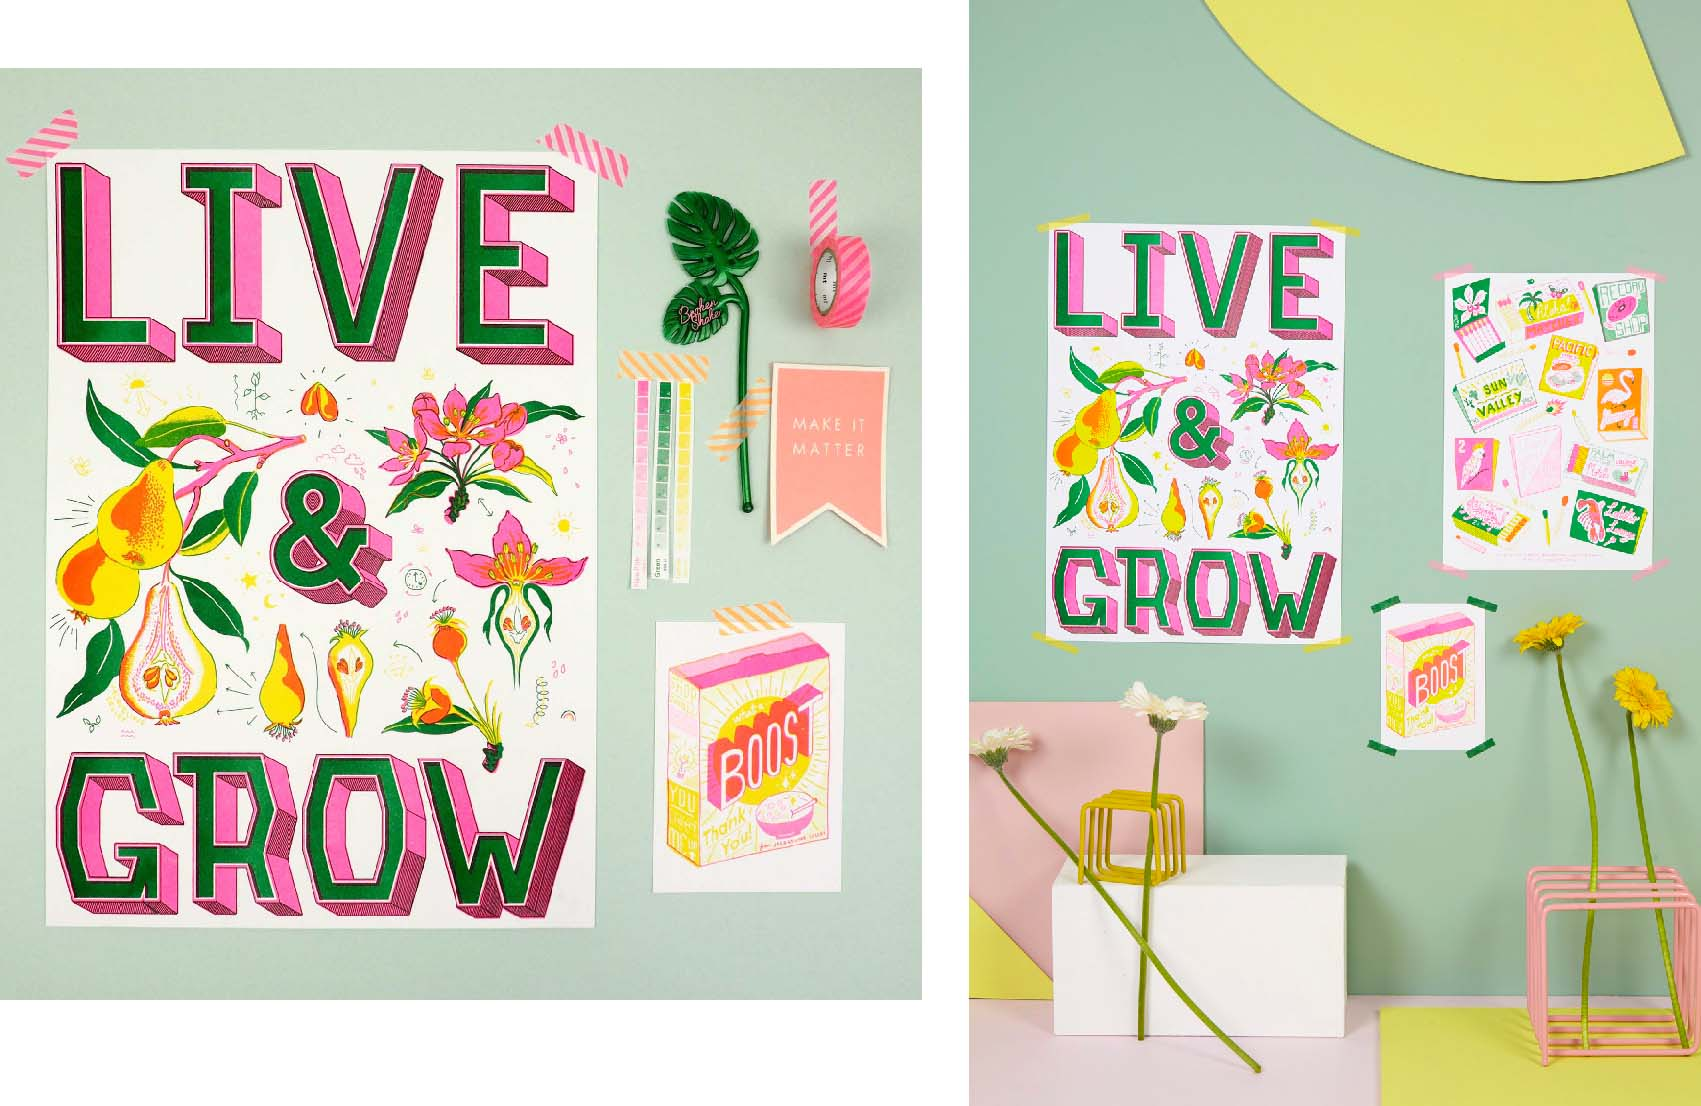 Live-And-Grow-Risograph-print-Jacqueline-colley.jpg